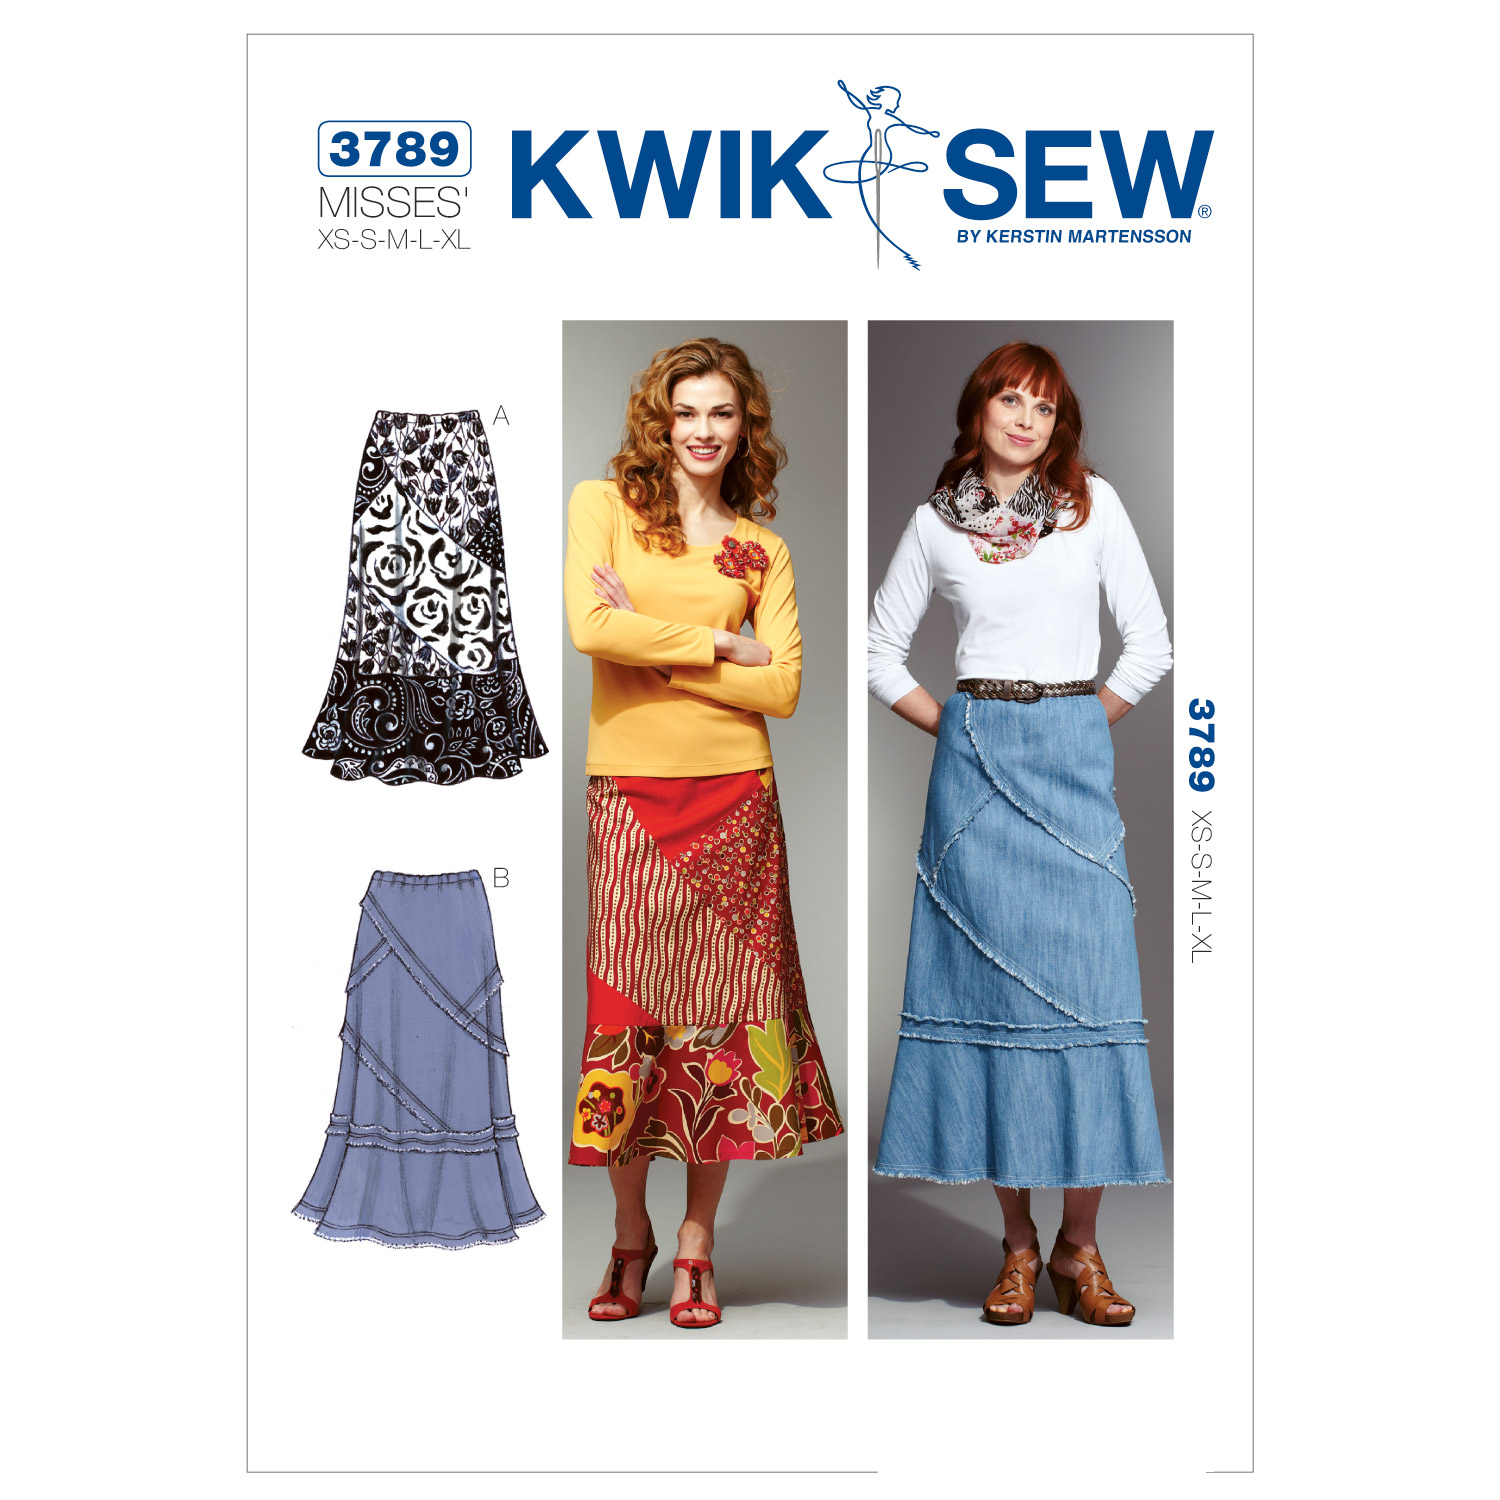 Kwik Sew Misses Patchy Skirts Pattern KP-3789